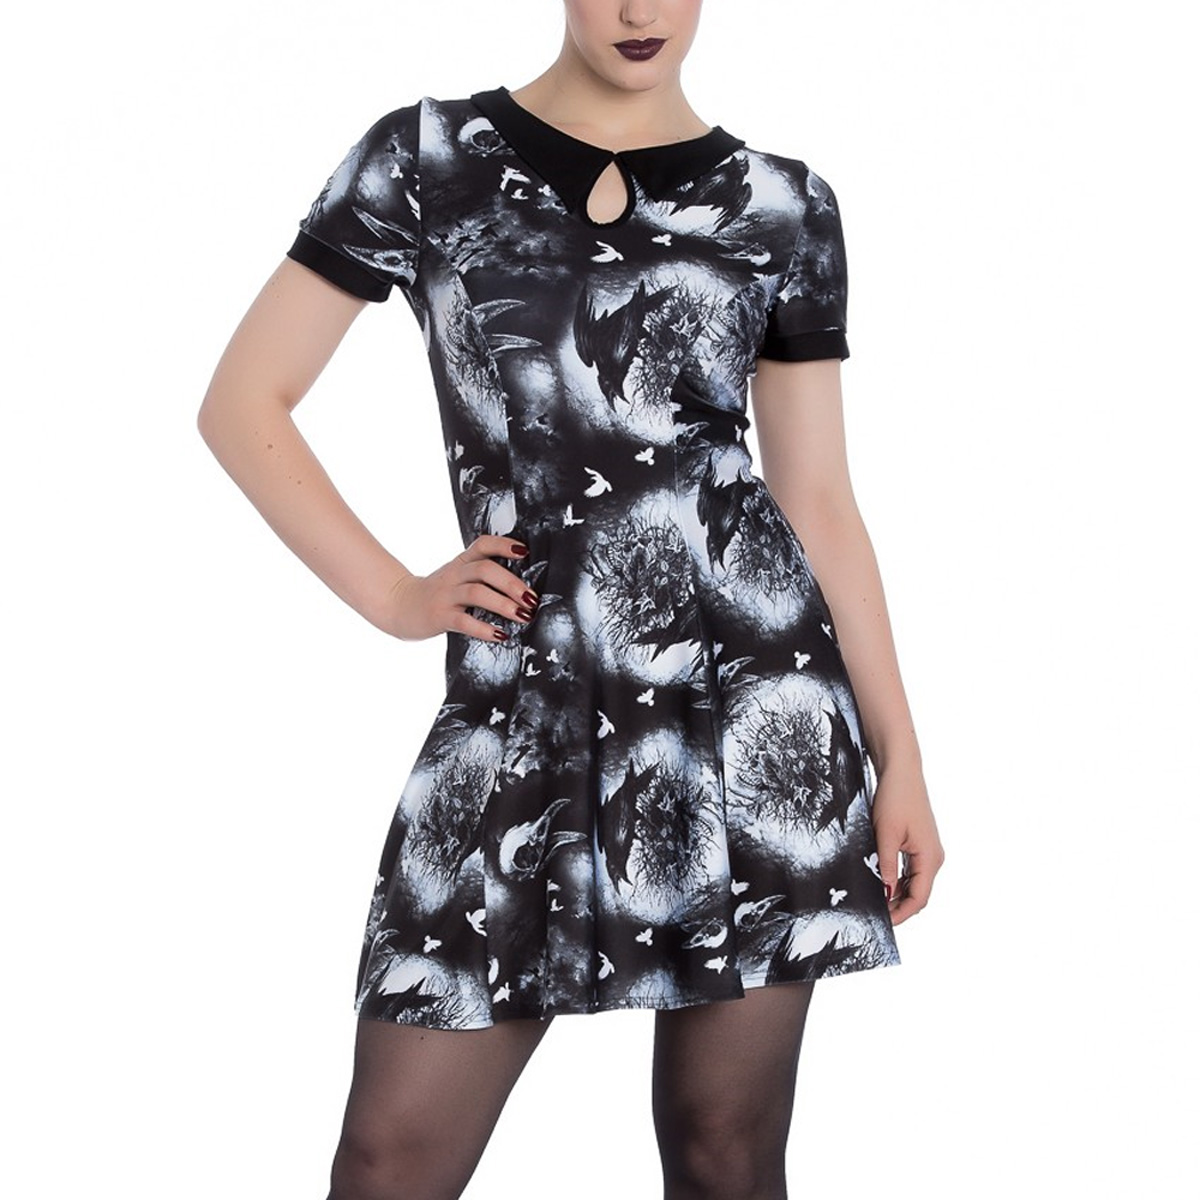 Hell-Bunny-Alternative-Goth-Punk-Black-Mini-Dress-CROWS-NEST-Witch-All-Sizes thumbnail 7